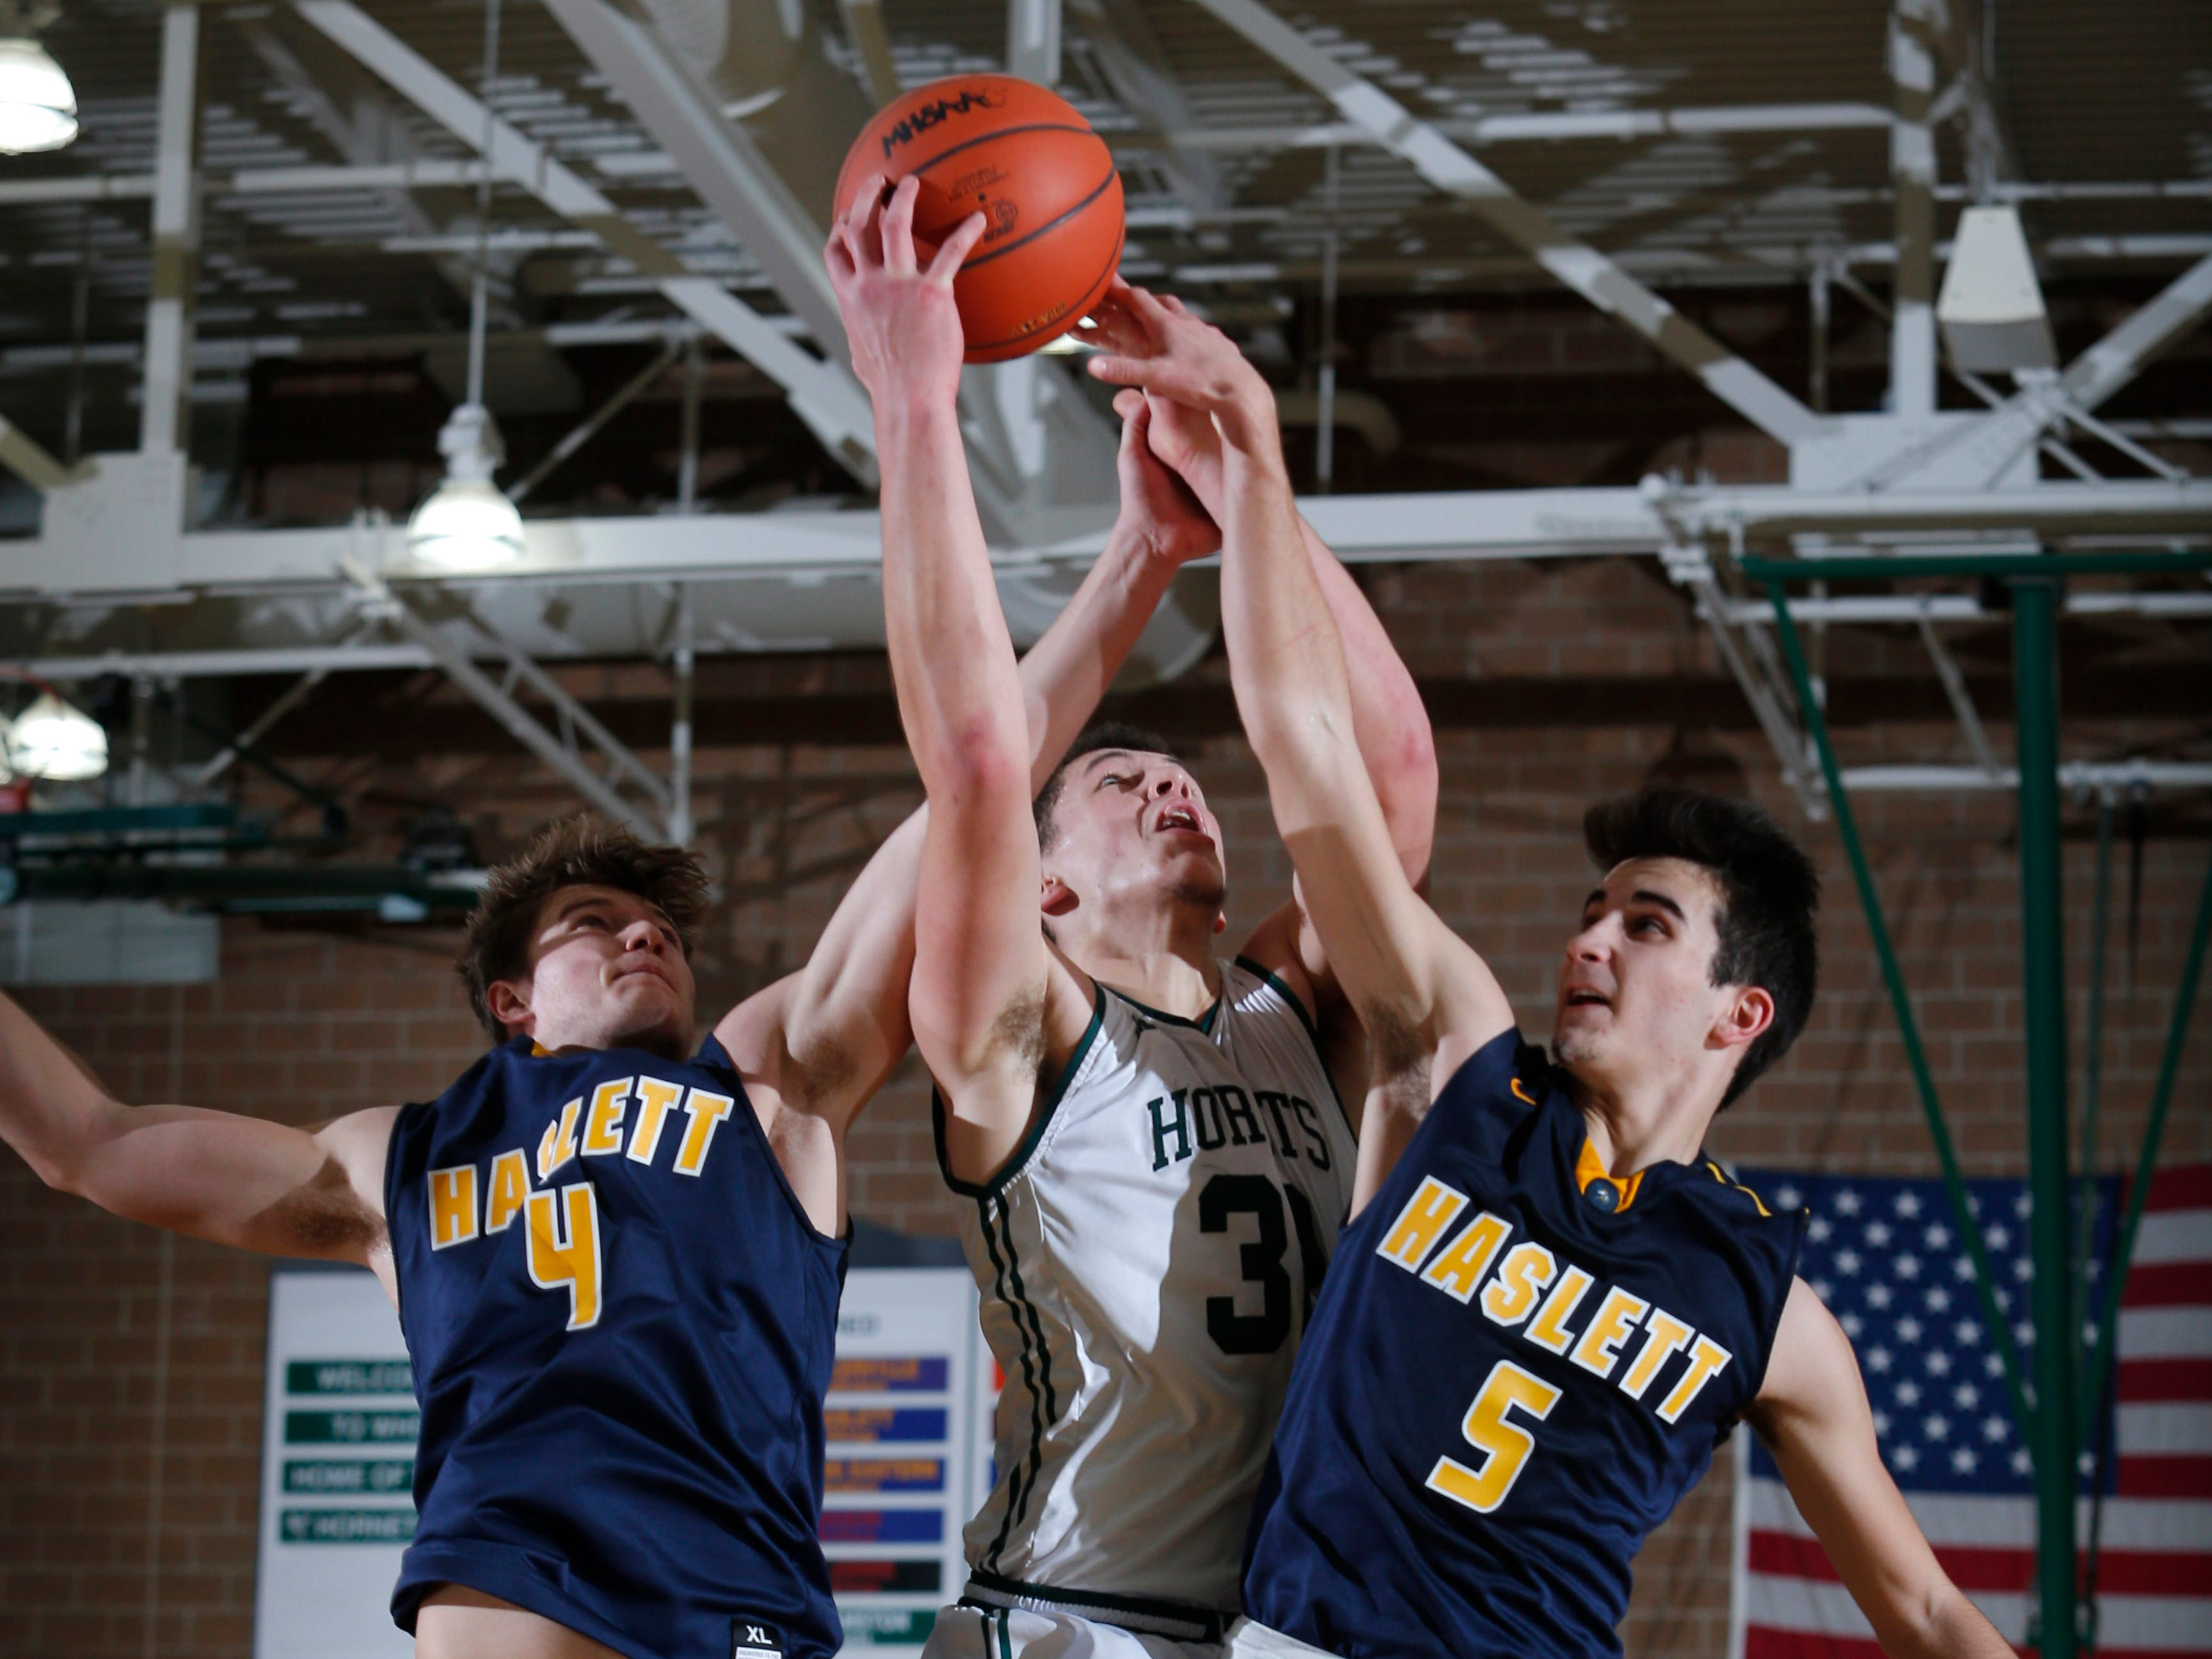 Williamston's Sean Cobb, center, and Haslett's Jaden Thelen, left, and Mitchell Mowid battle for a rebound, Friday, Jan. 11, 2019, in Williamston, Mich.